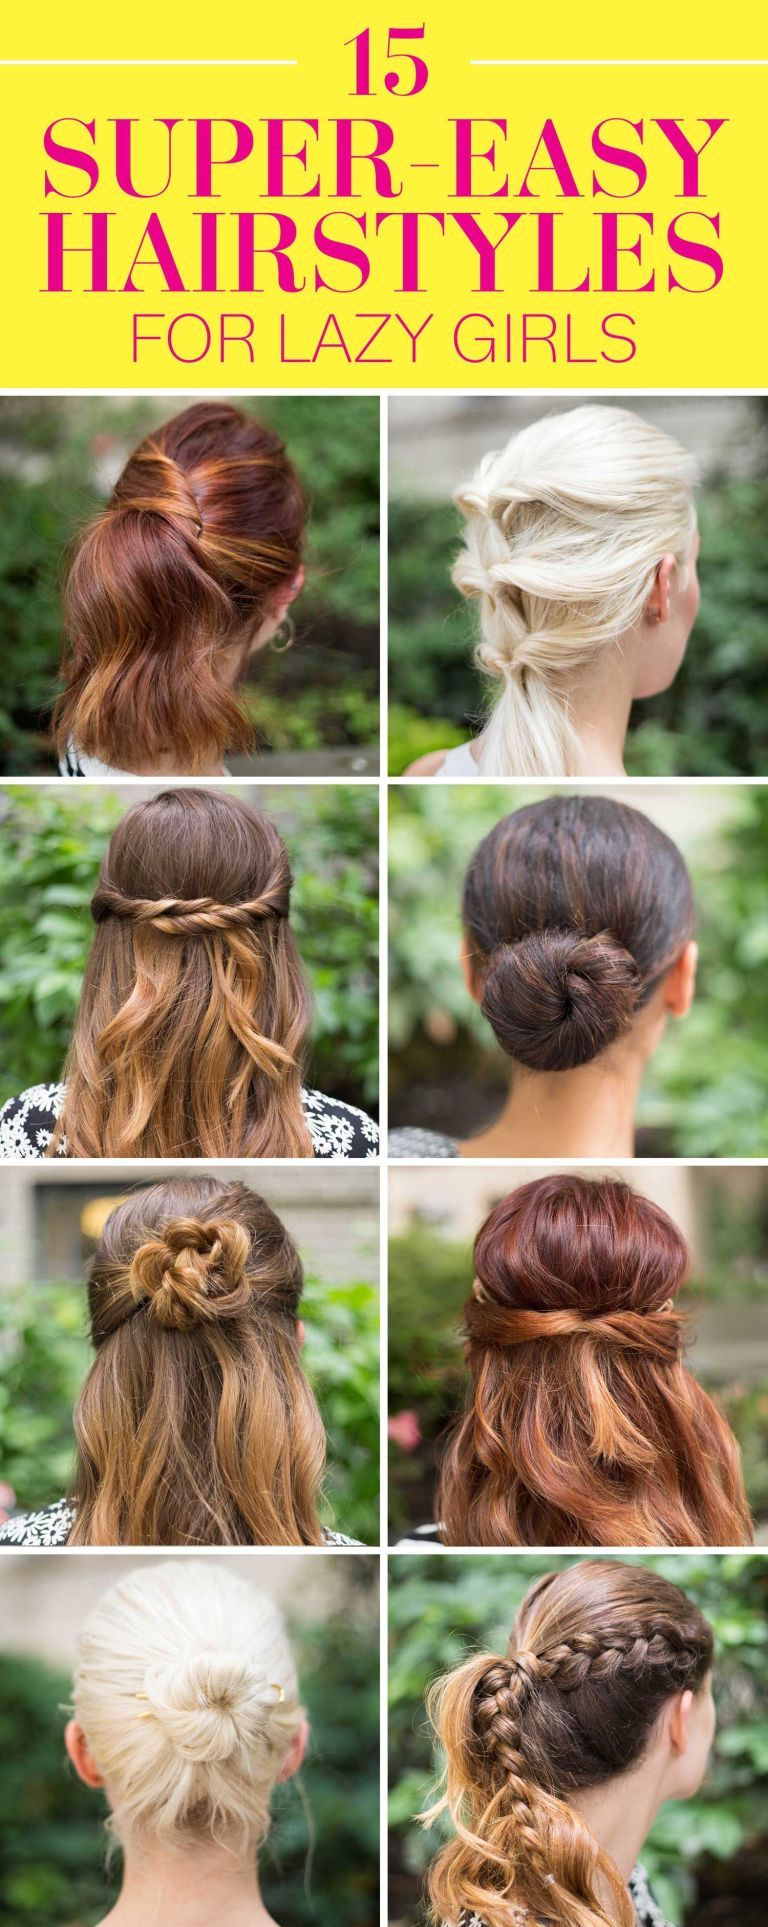 20 Truly Easy Hairstyles You Can Do in Under 5 Mins, 'Cuz You *Lazy* | Super easy hairstyles ...